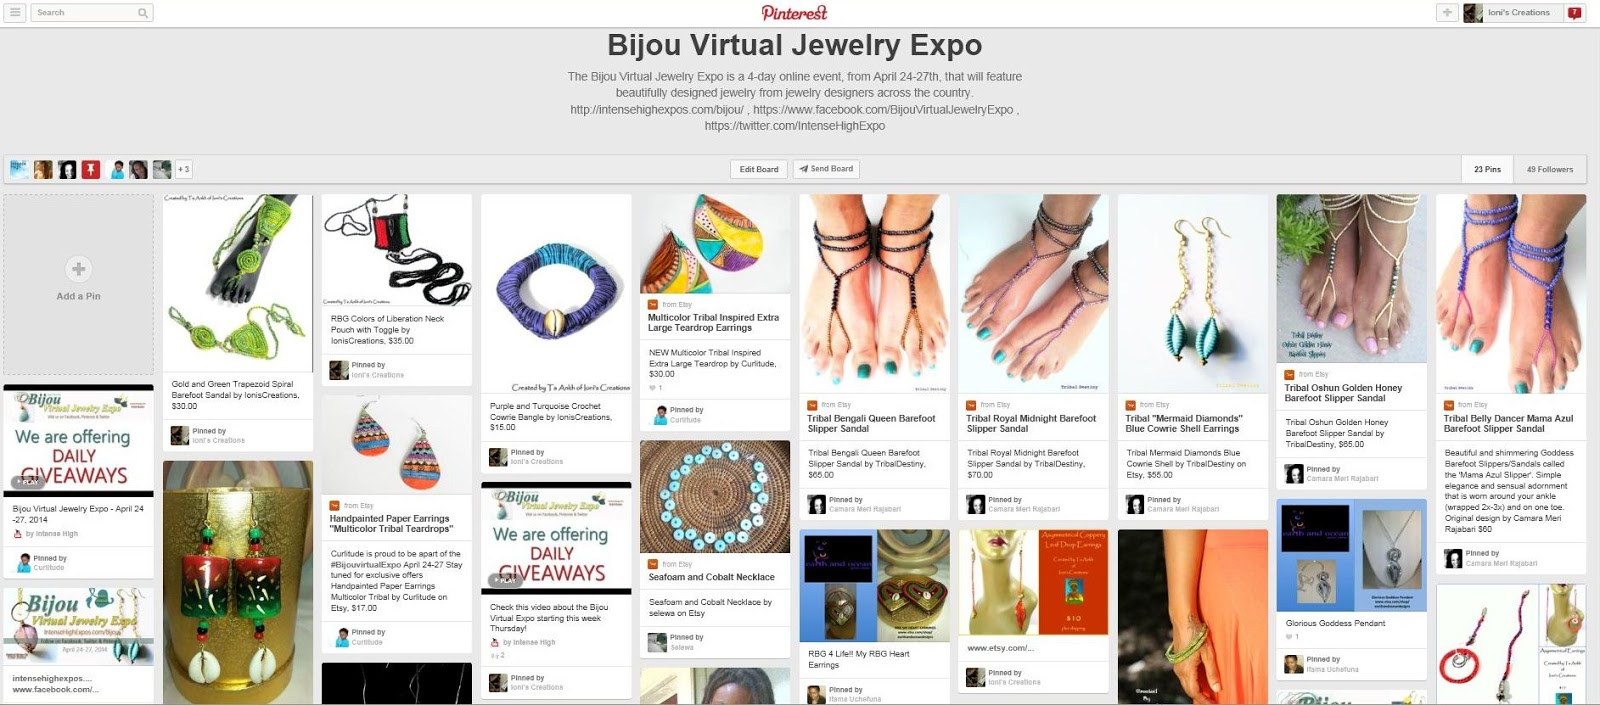 The Bijou Virtual Jewelry Expo Pinterest Board